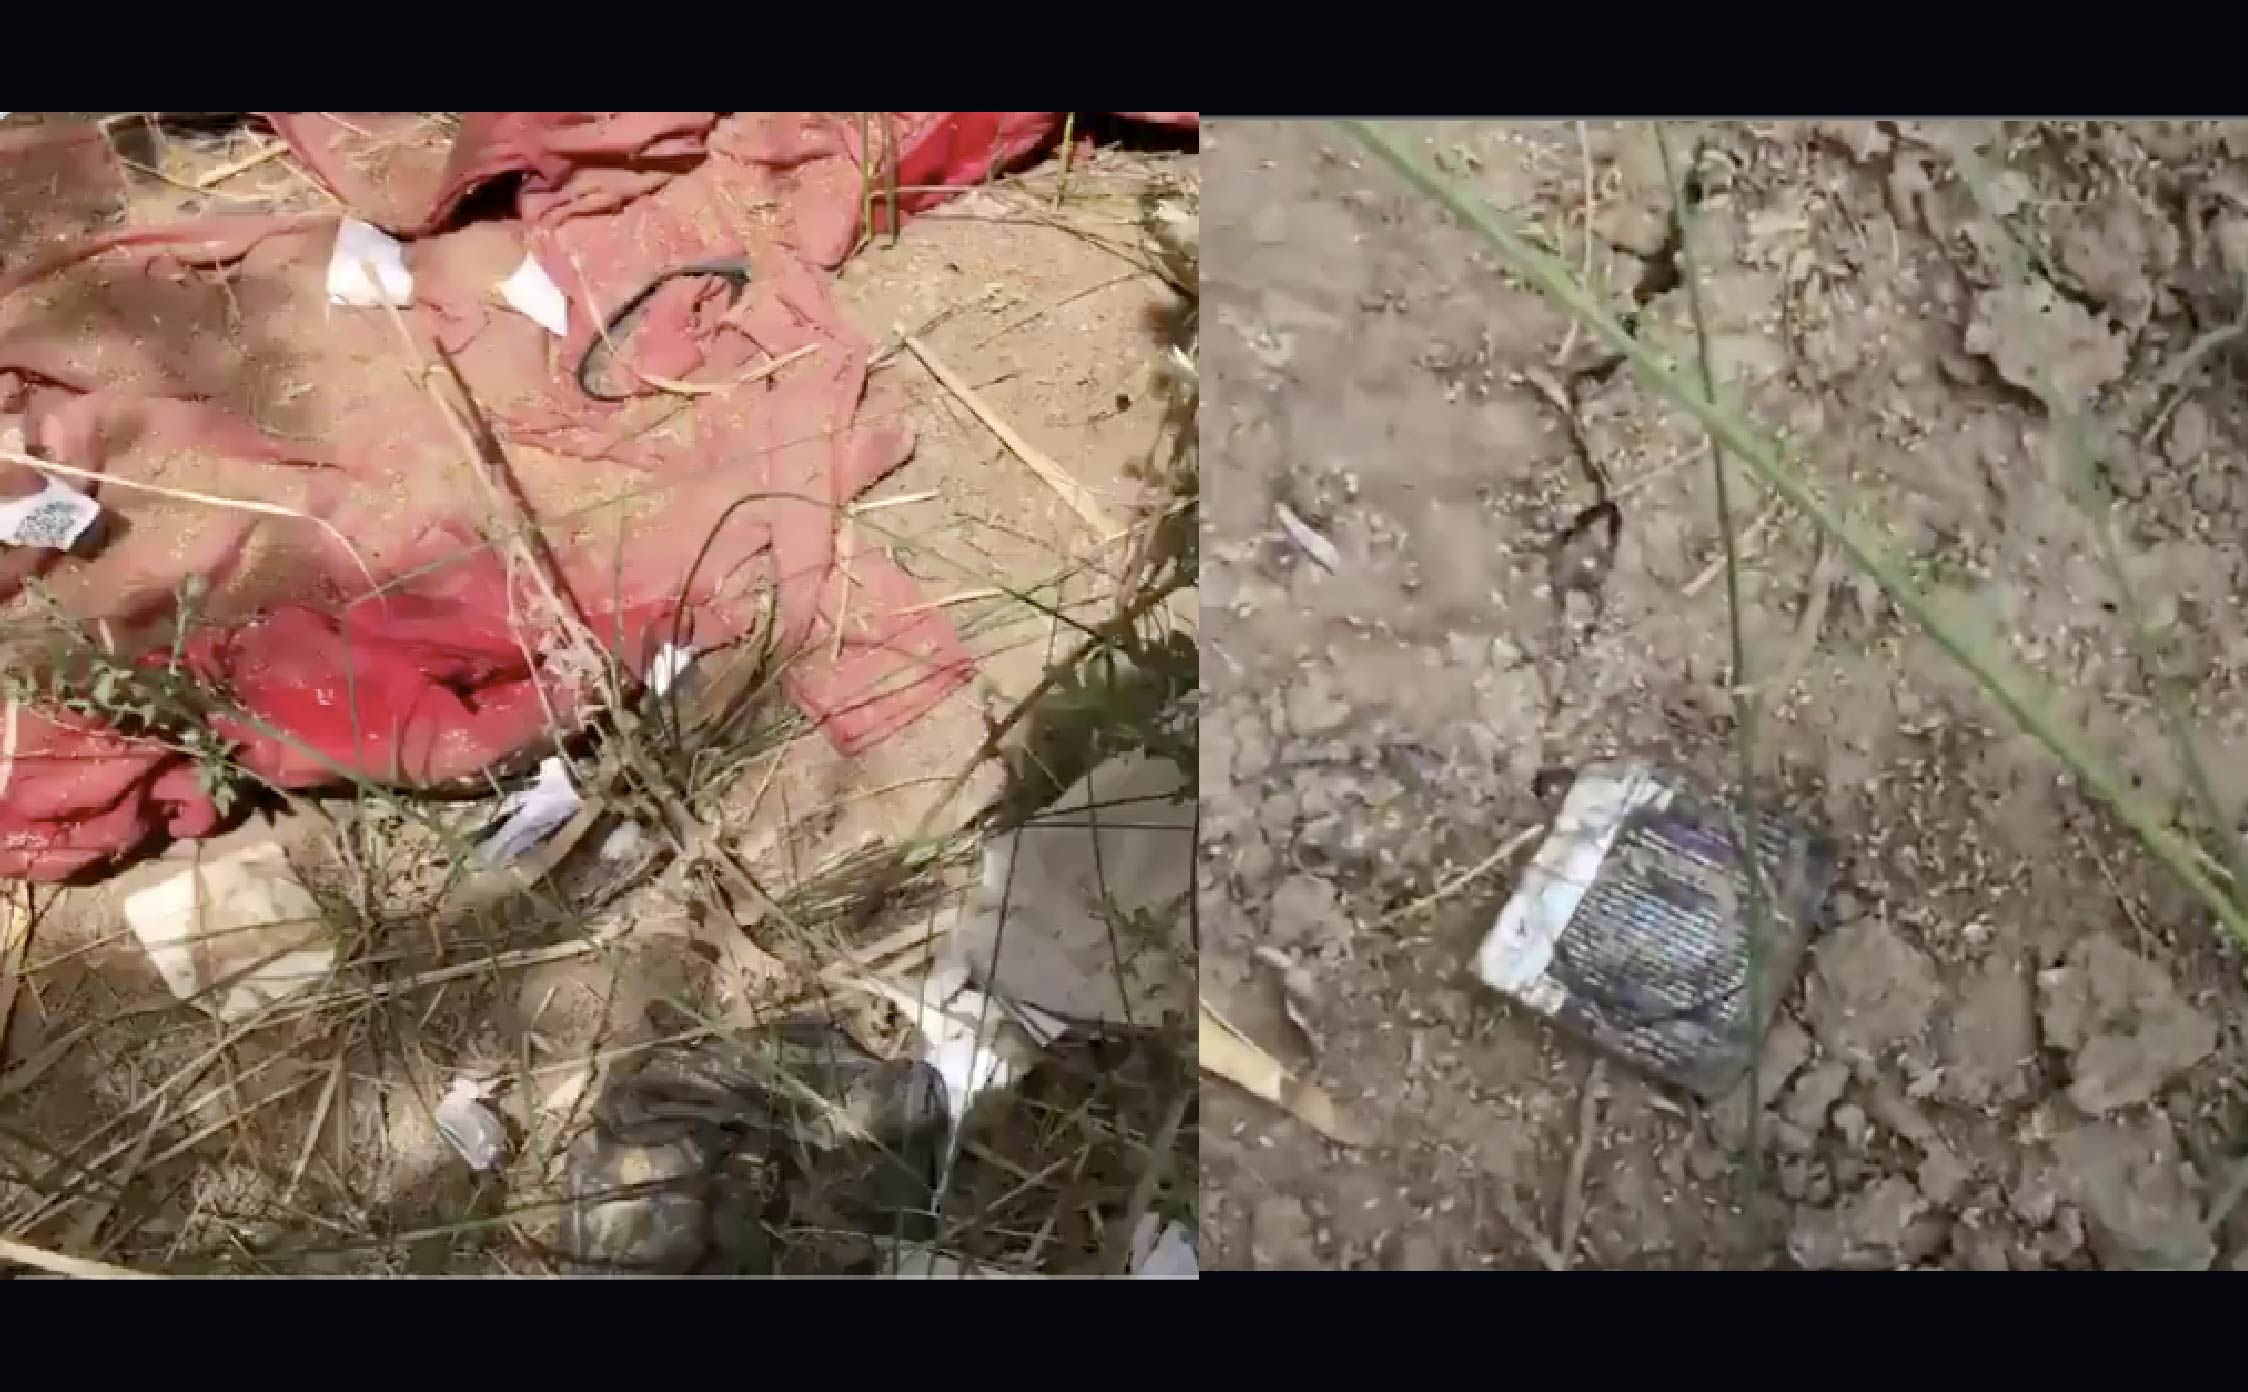 [VIDEO] Journo Finds Ground Littered With Condoms, Kids Clothing, Lubrication at AZ Border